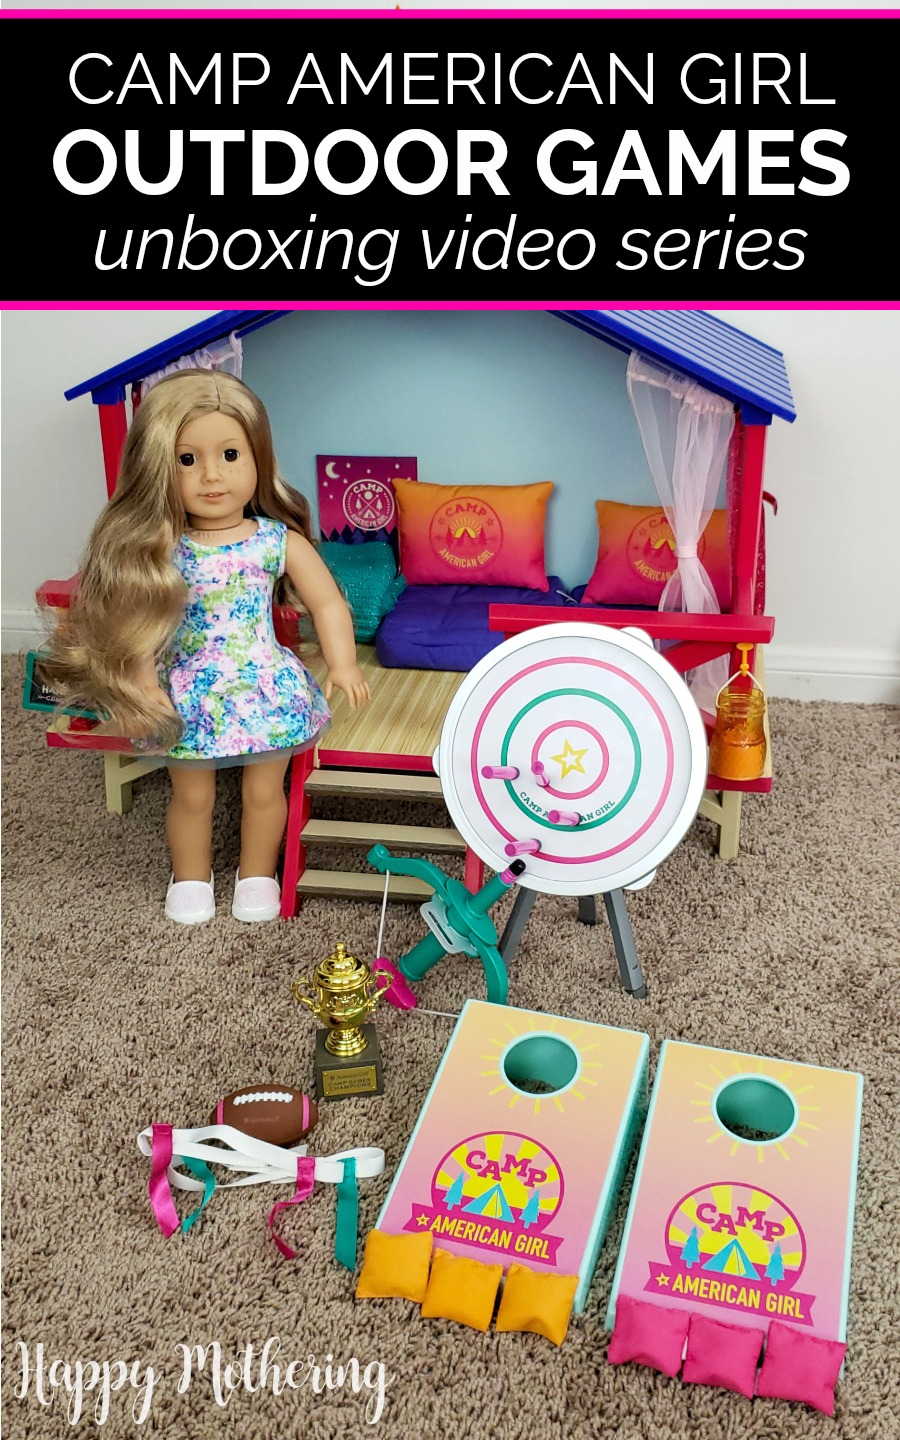 If your daughter is an American Girl dolls fan, then she will love the Camp American Girl Outdoor Games. Watch Kaylee and I unbox it, then be sure to enter the giveaway too!